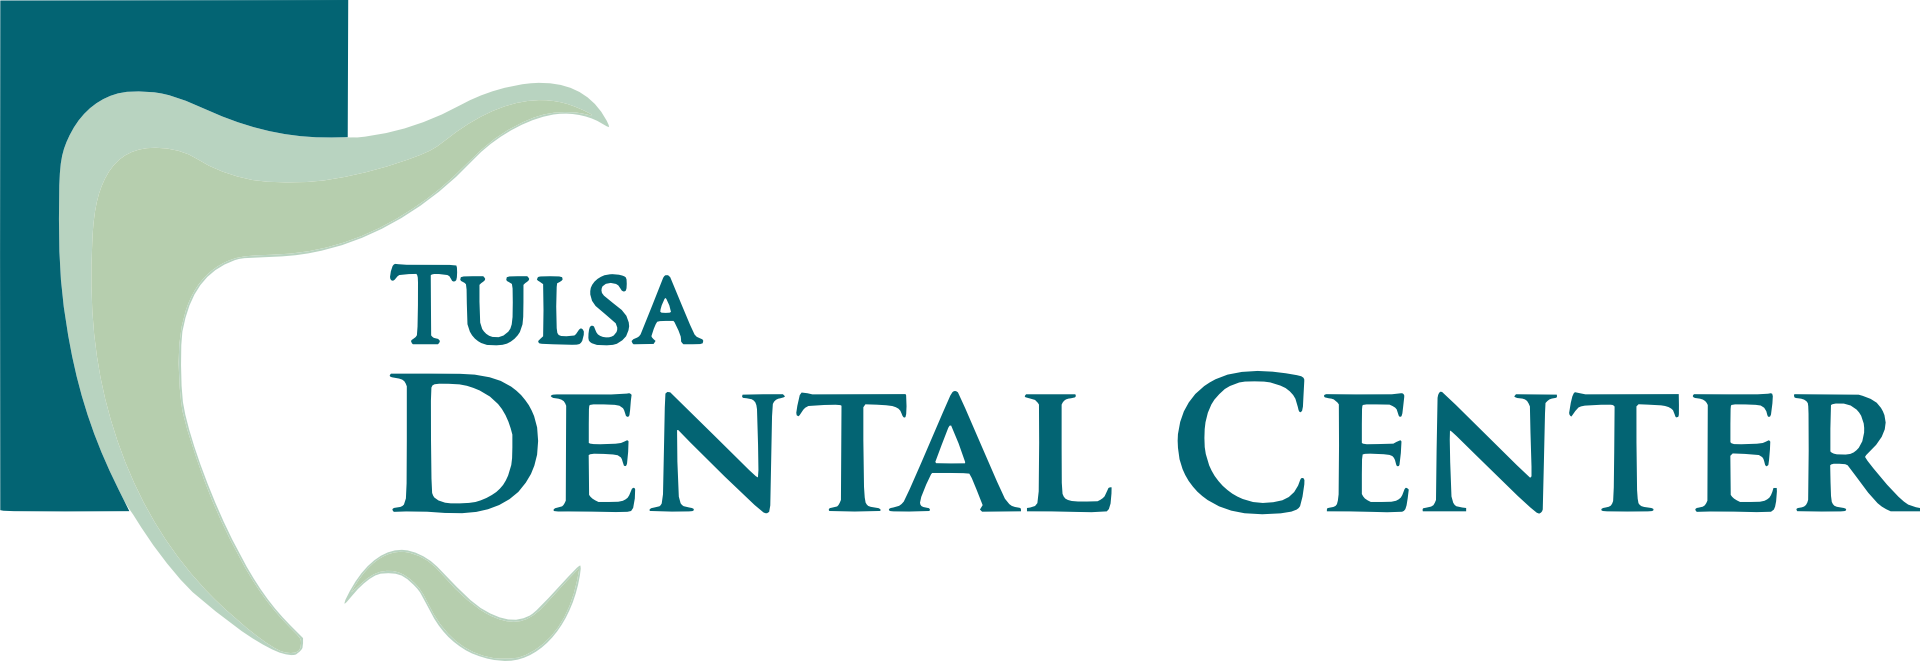 Tulsa Dental Center | General Dentistry at 4824 S. Union Ave - Tulsa - Reviews - Photos - Phone Number